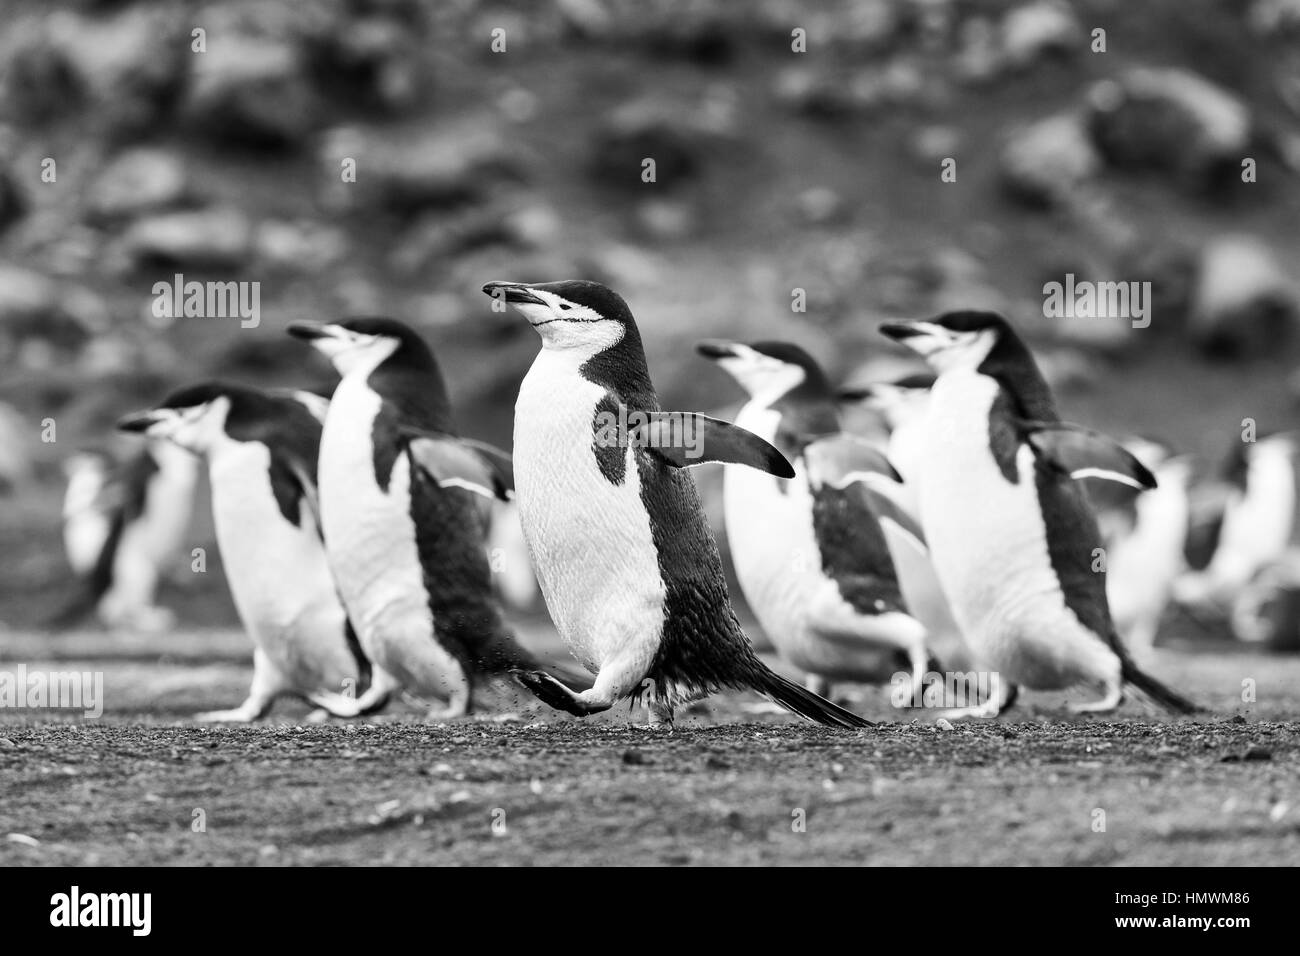 Chinstrap penguin Pygoscelis antarctica, adults, marching over volcanic sand, Baily Head, Deception Island in January. - Stock Image